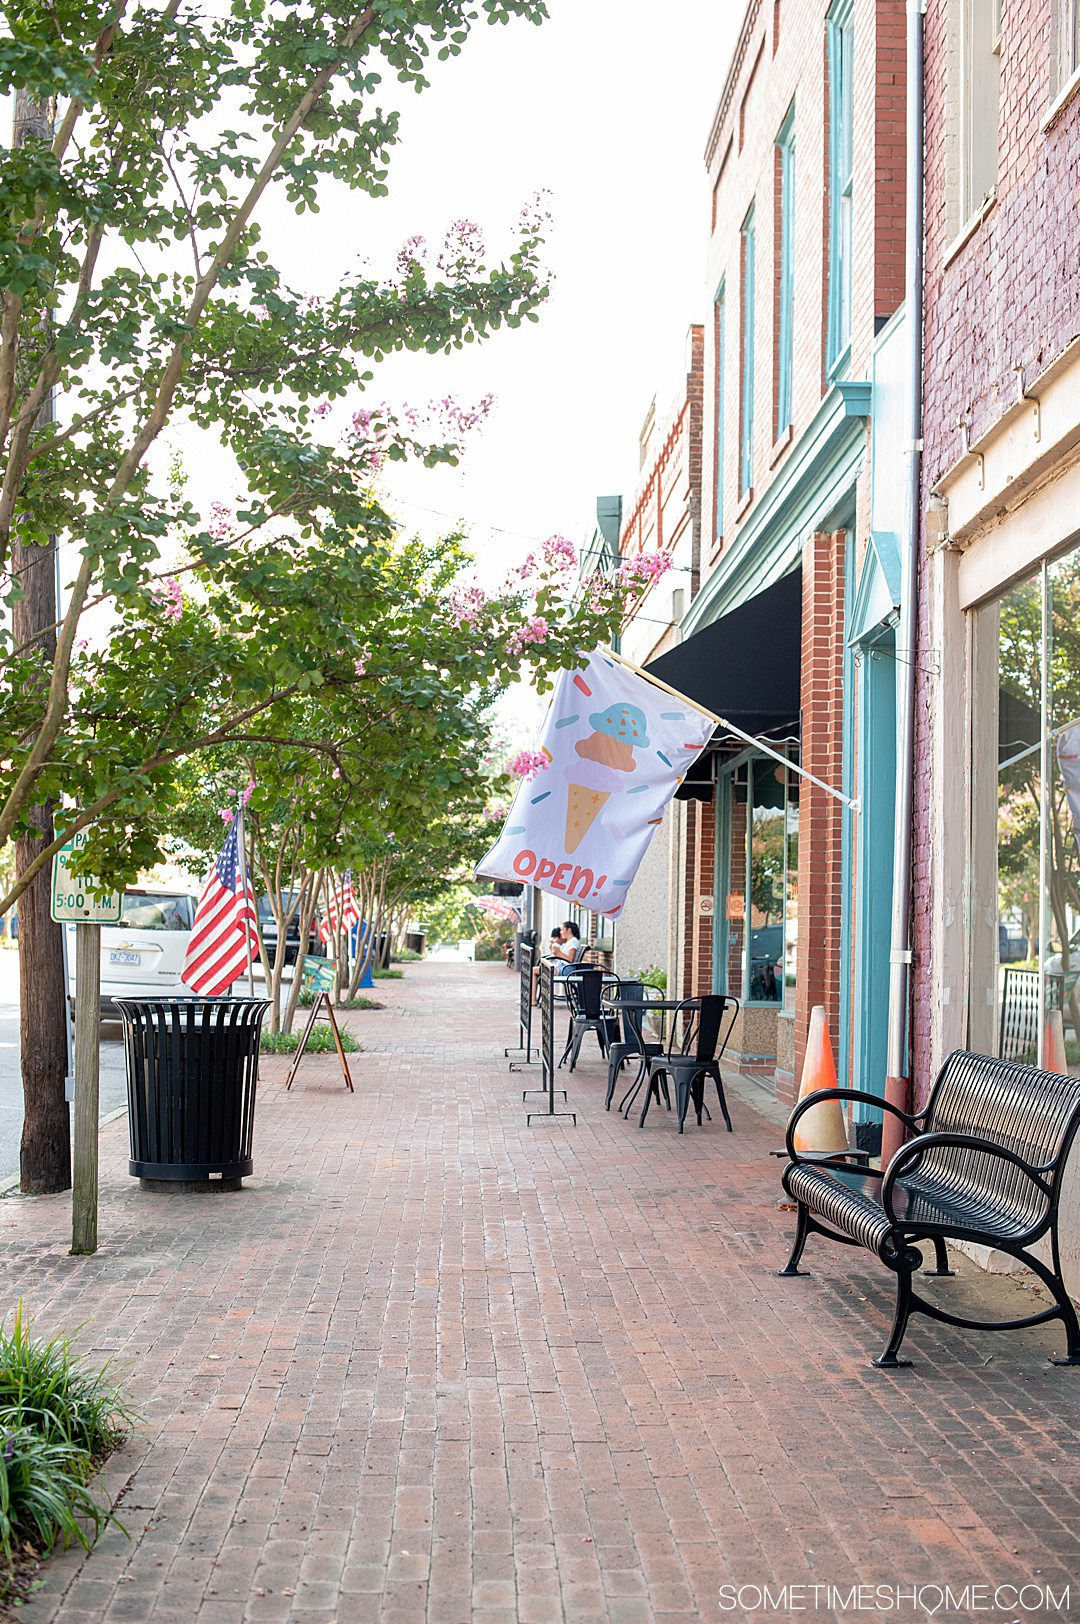 Things to do in Warrenton, NC: get treats on main street. Photo of the brick walkway with an ice cream flag on the sidewalk.